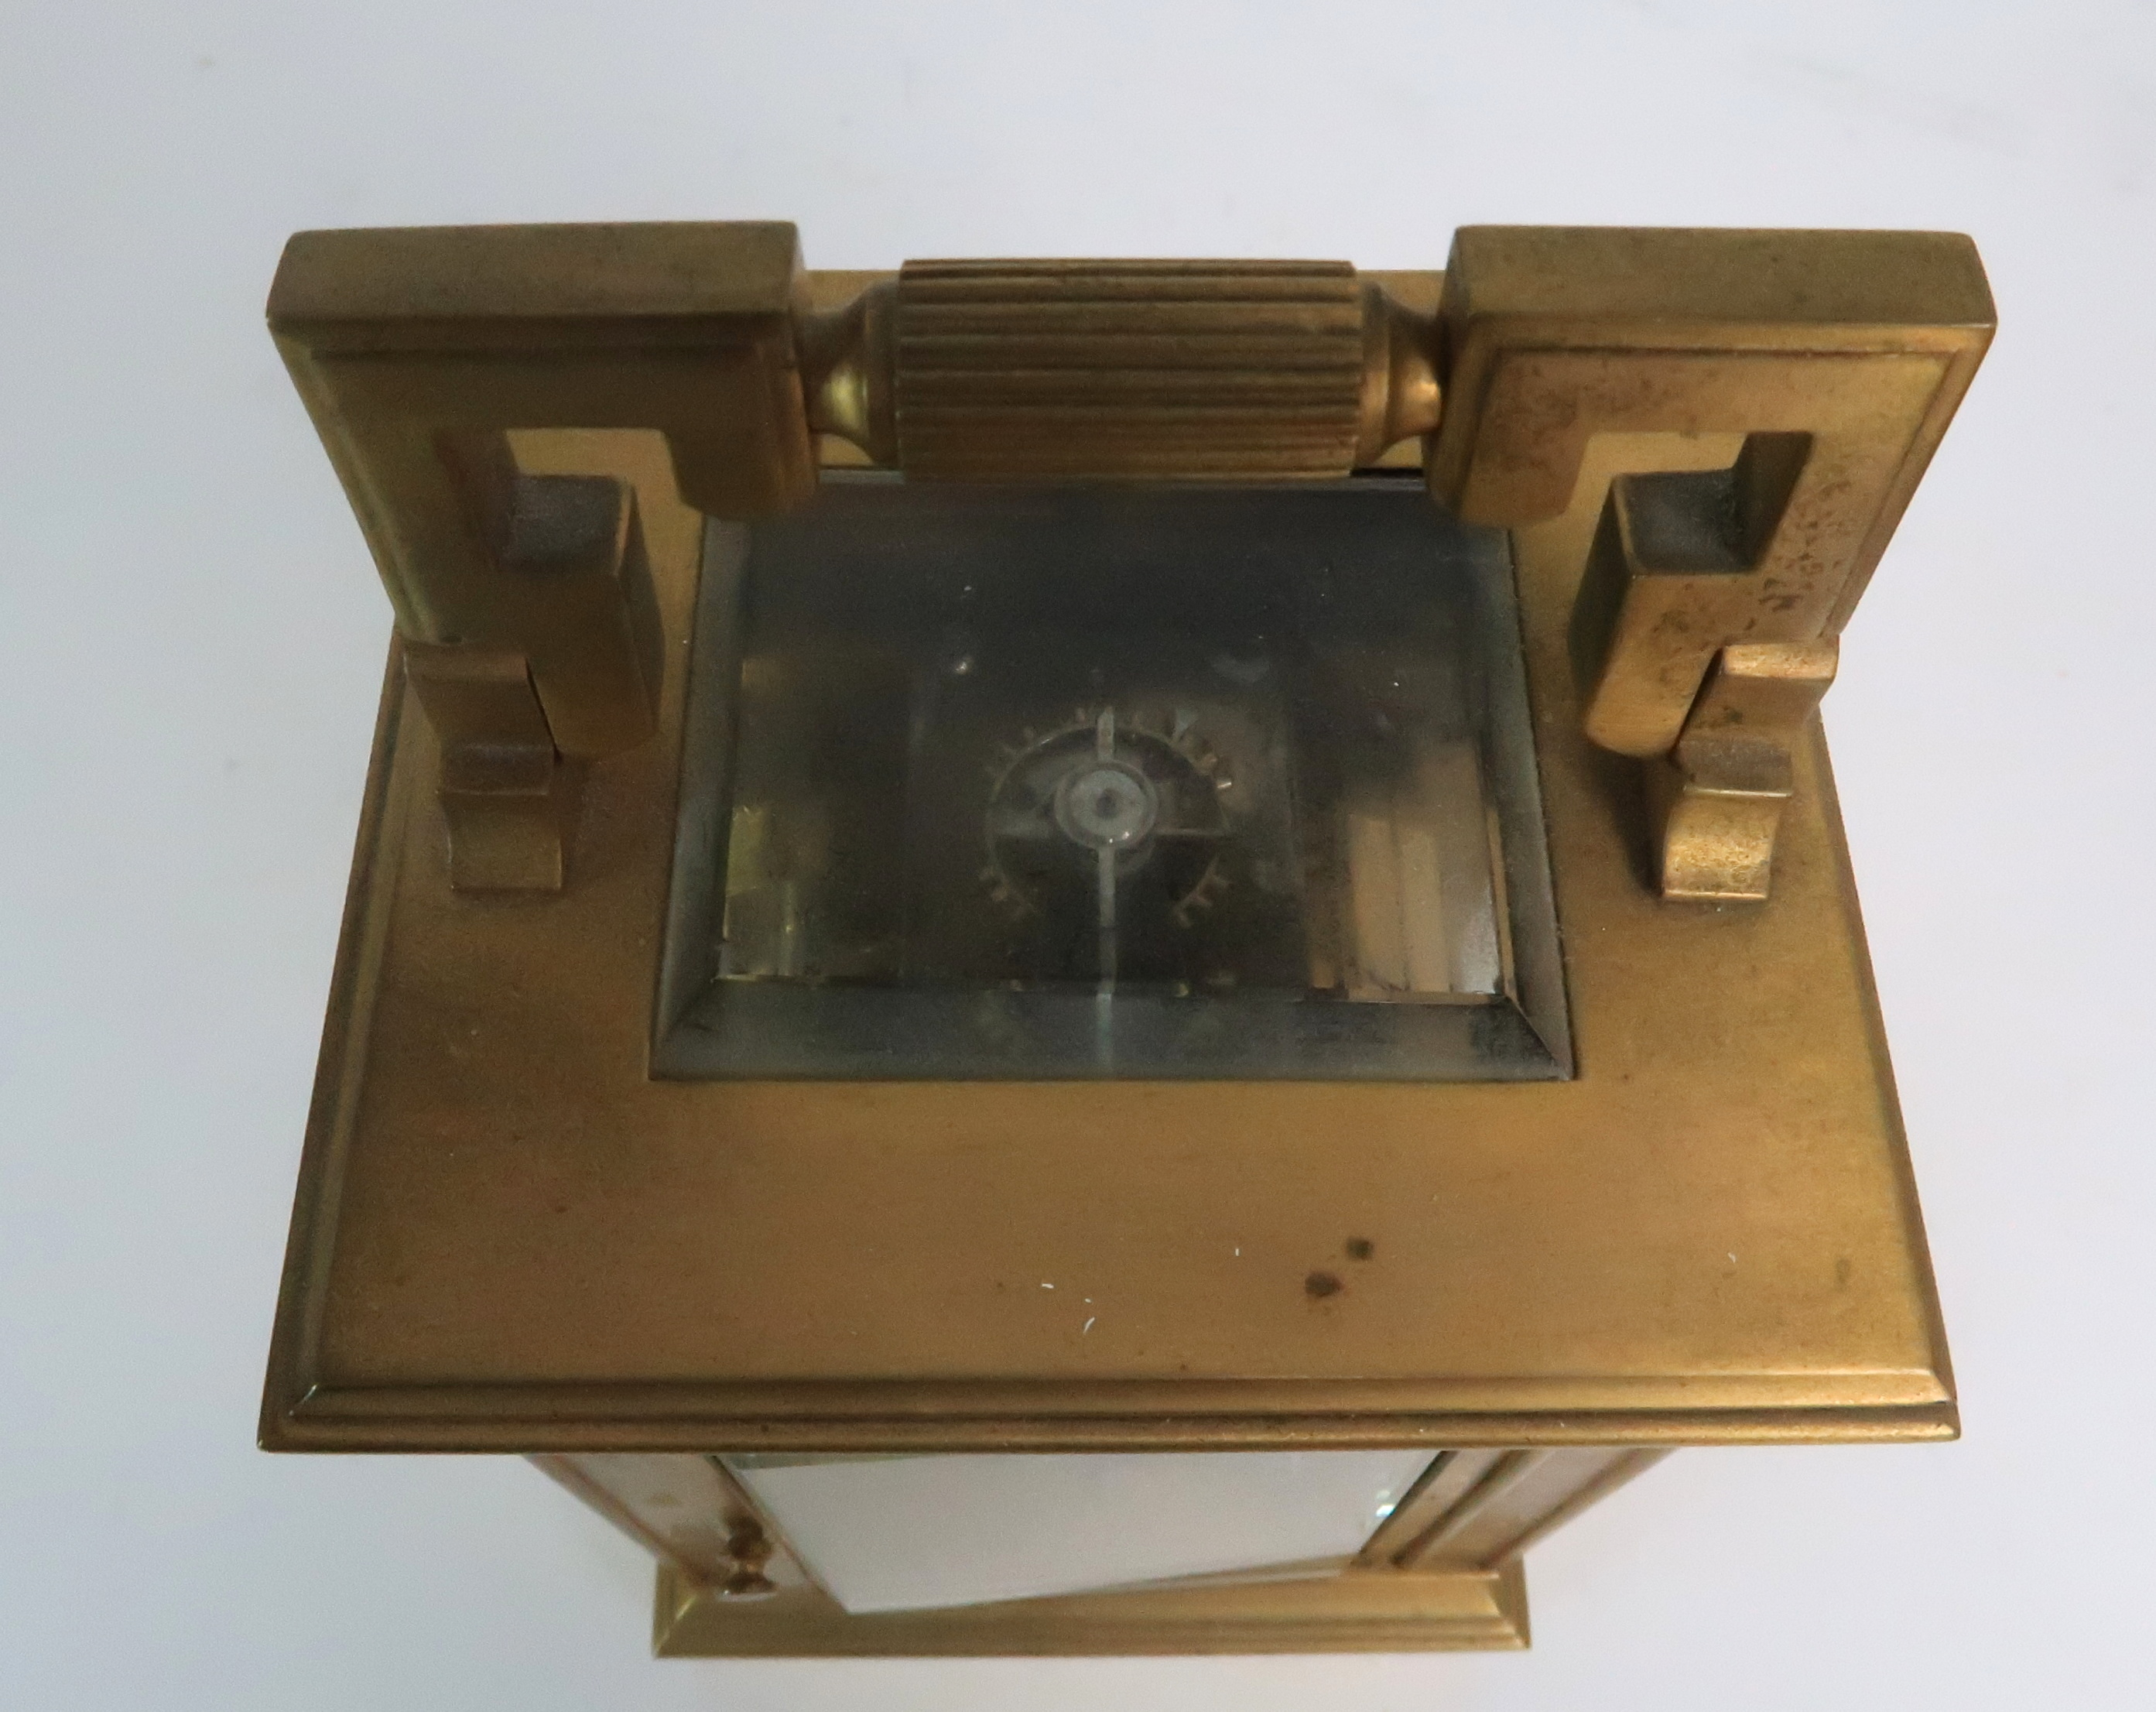 A FRENCH BRASS AND GLASS REPEATER CARRIAGE CLOCK the enamel dial with Roman numerals, with - Image 6 of 8